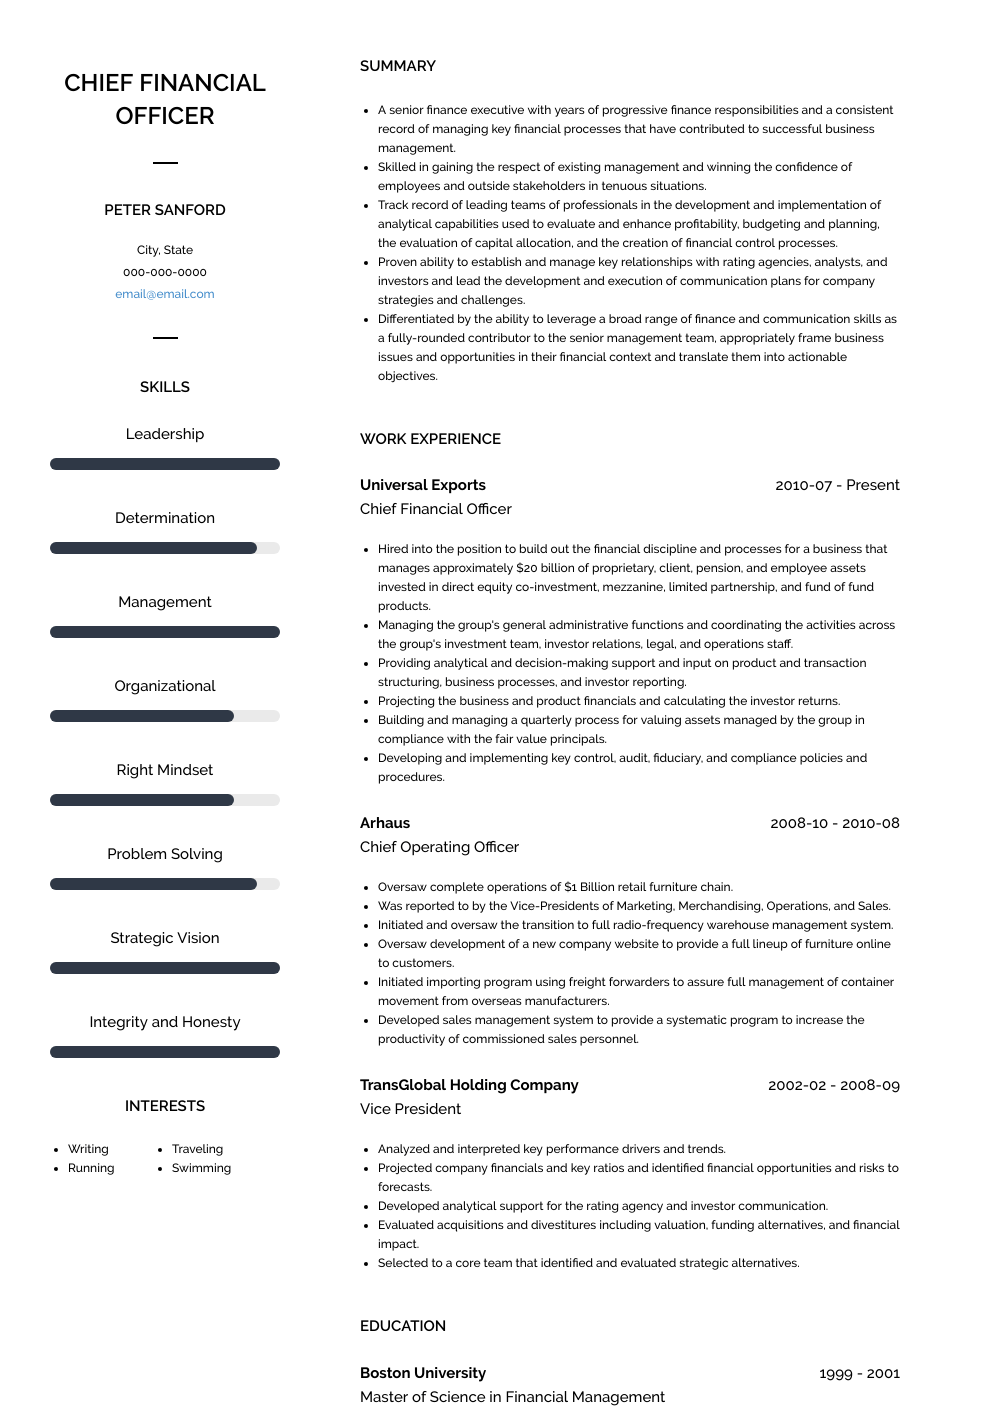 Chief Financial Officer Resume Sample and Template